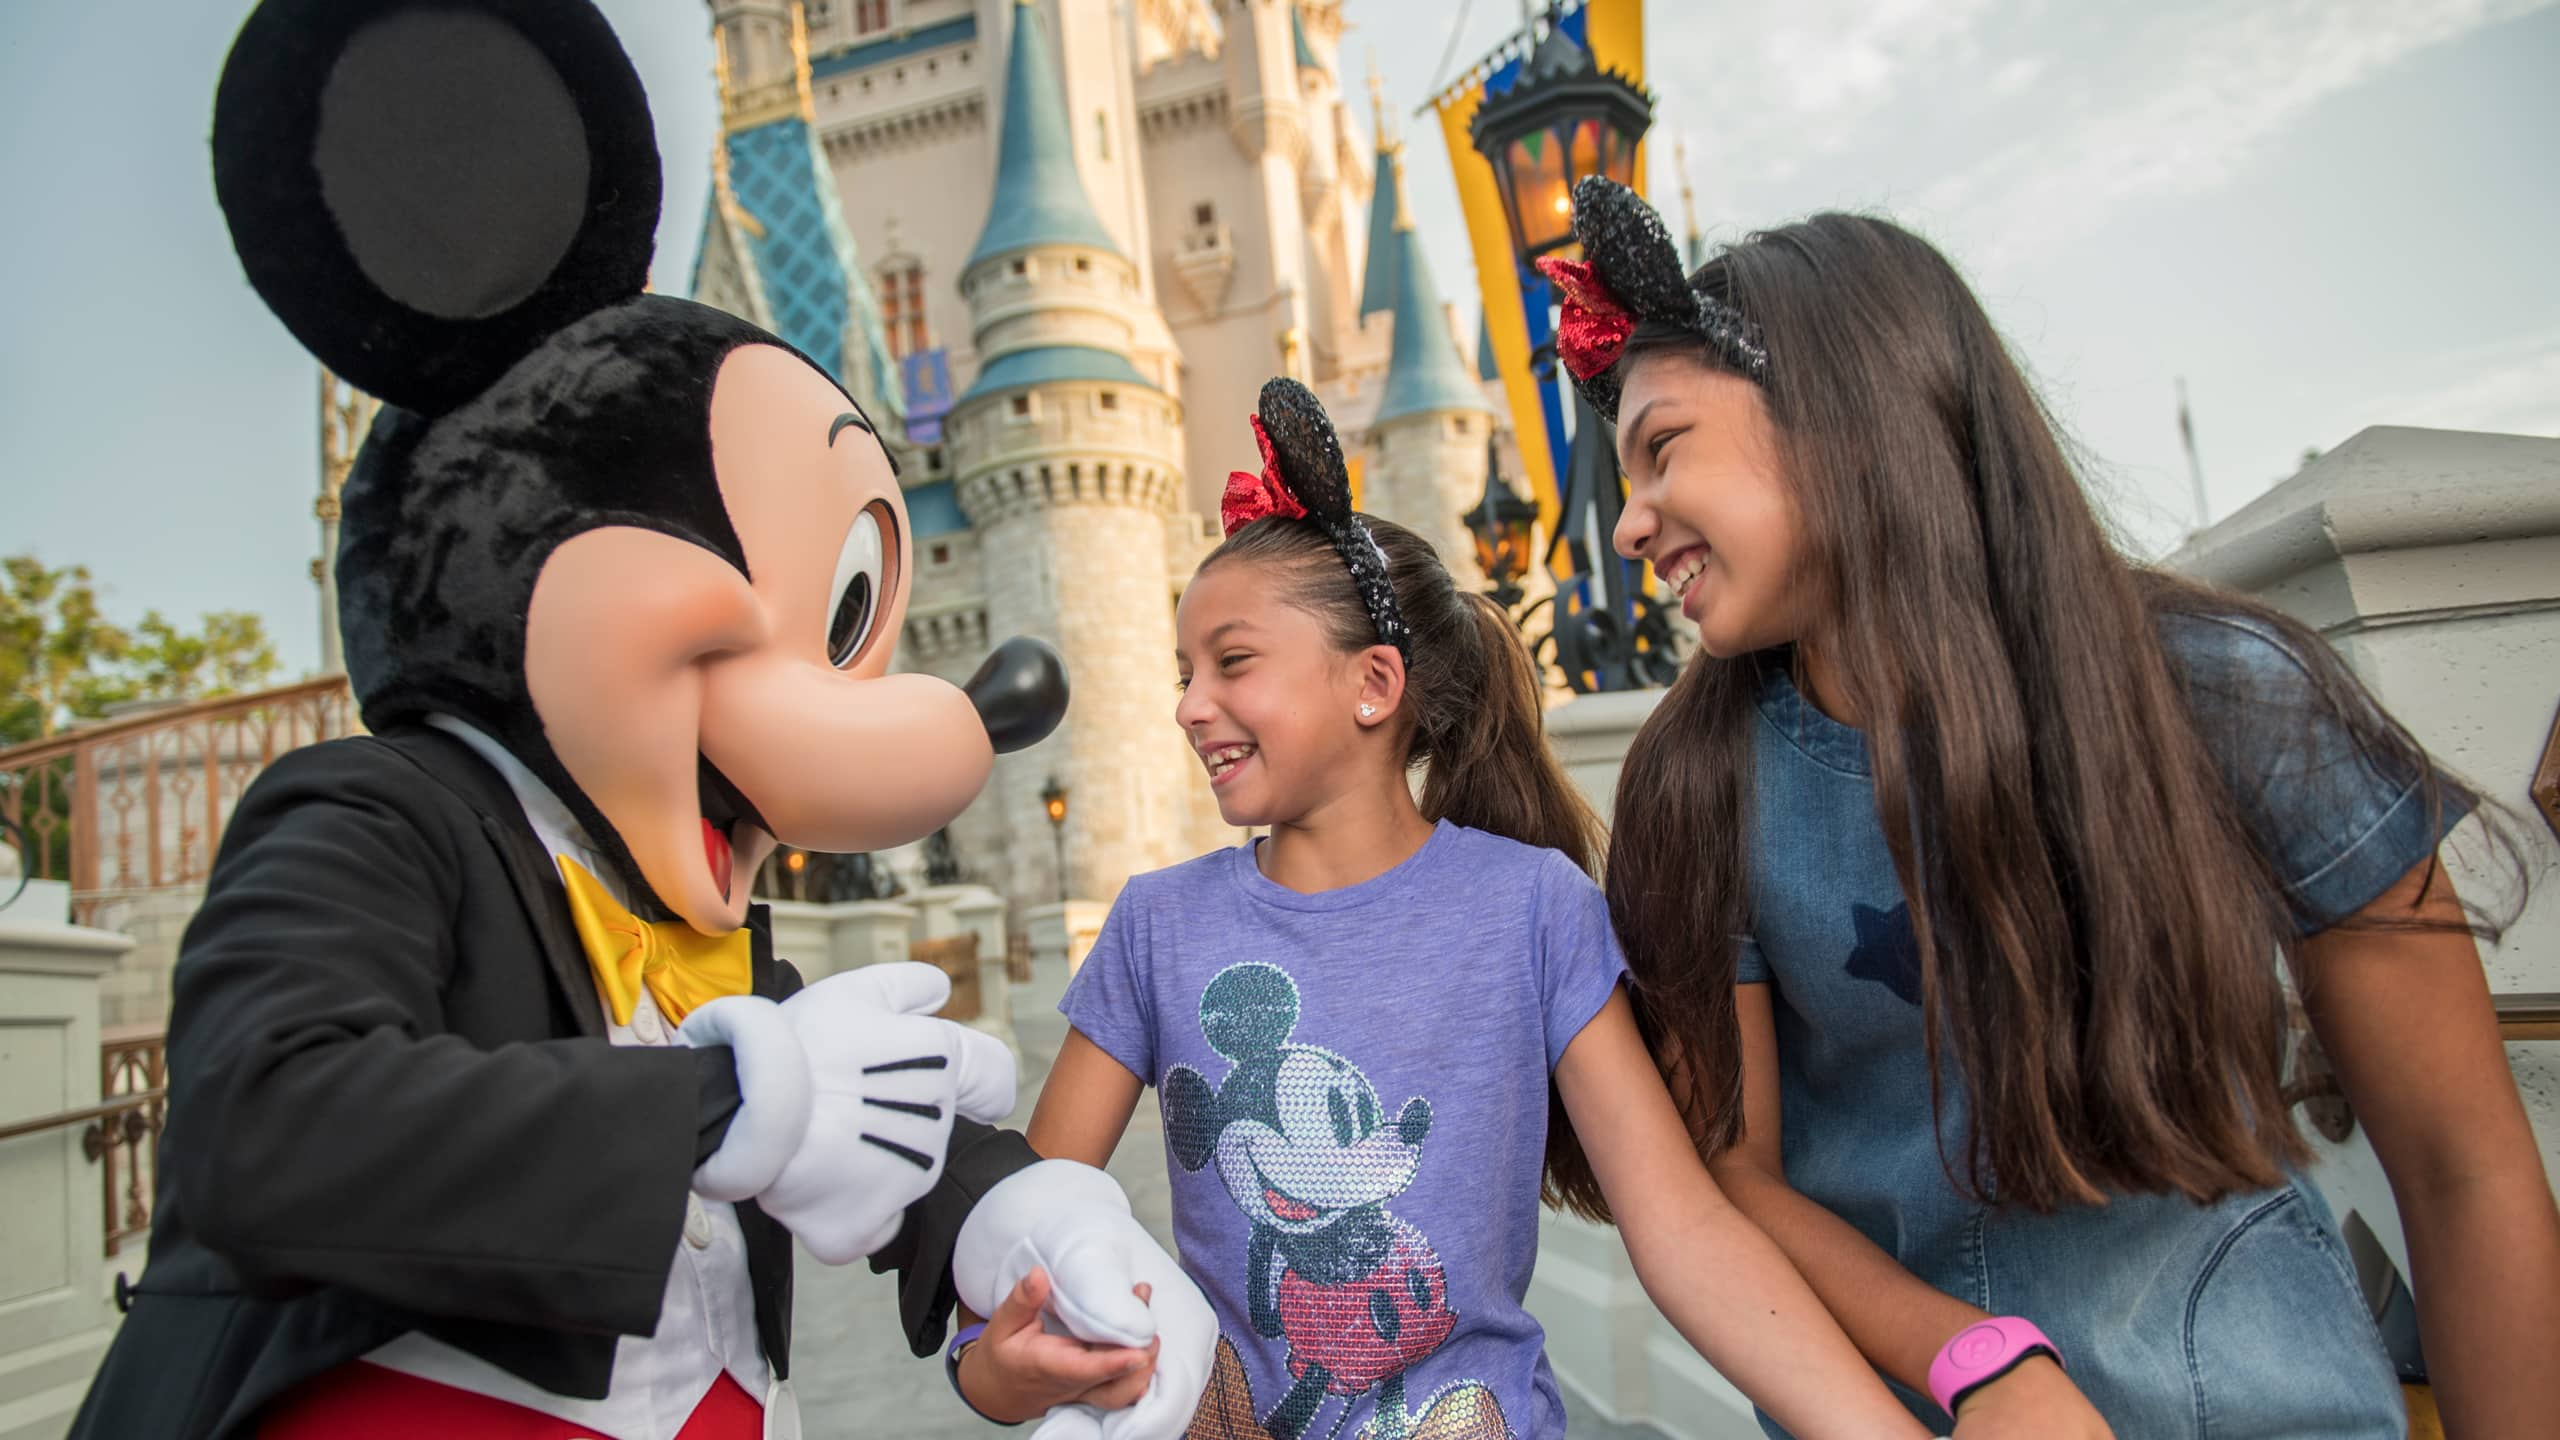 Mickey Mouse greeting 2 girls beside Cinderella Castle at Magic Kingdom park